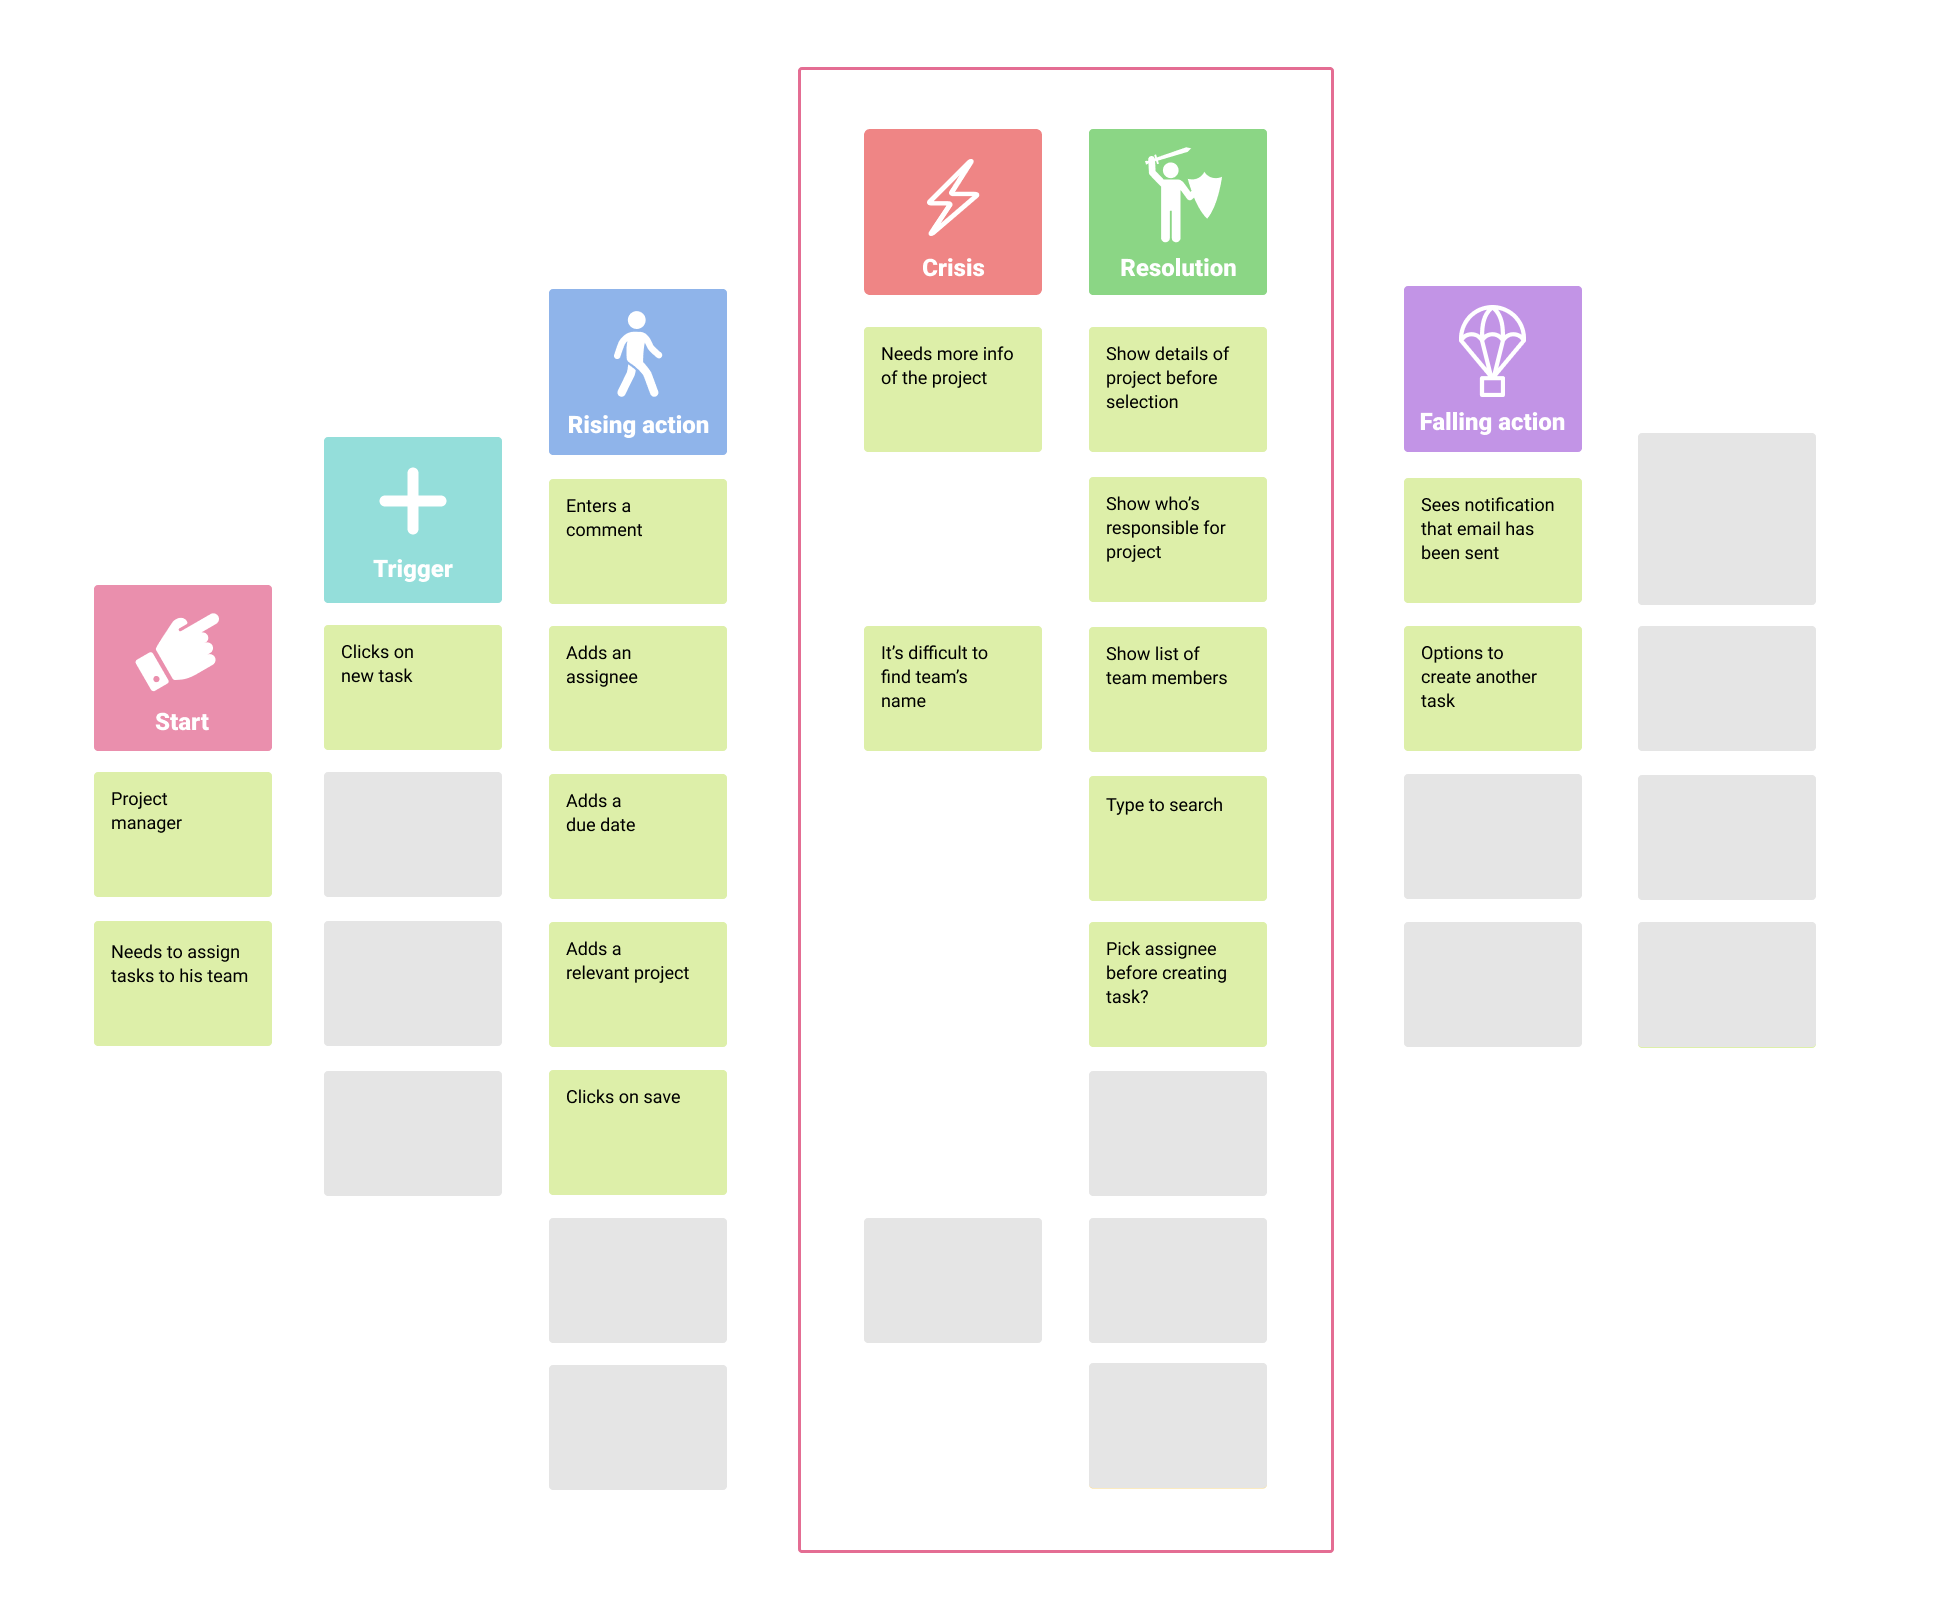 Falling action section in Storymapping process